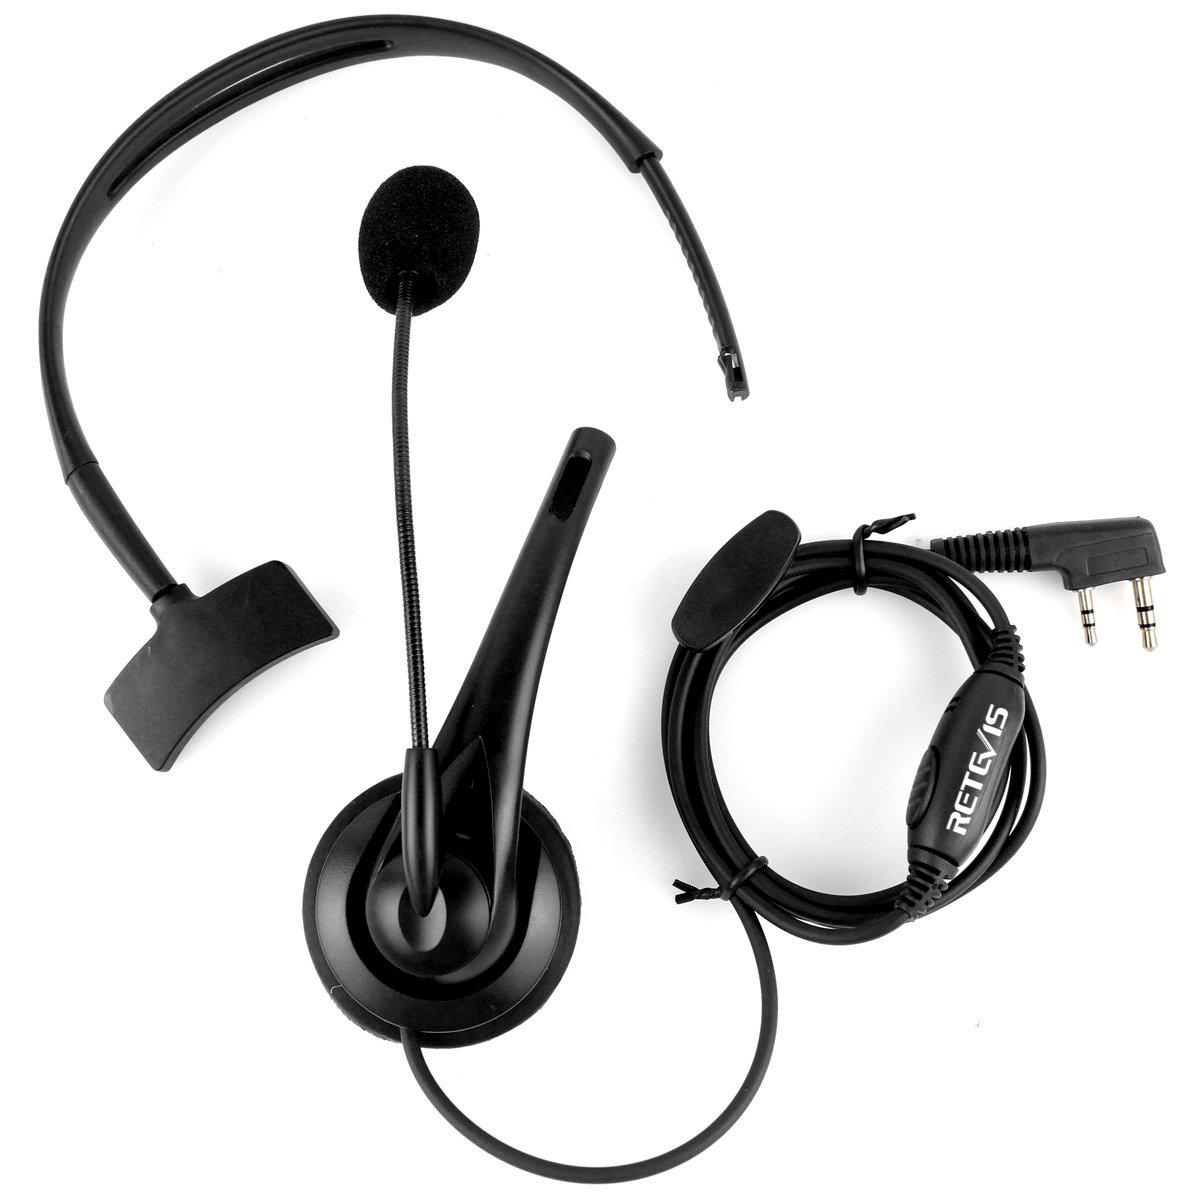 Retevis Walkie Talkie Earpiece Headset with Mic Noise Cancelling Headphone Overhead Headset for Kenwood H-777 RT21 RT22 RT27 H-777S Baofeng UV-5R BF-888s 2 Way Radio (1 Pack) by Retevis (Image #7)